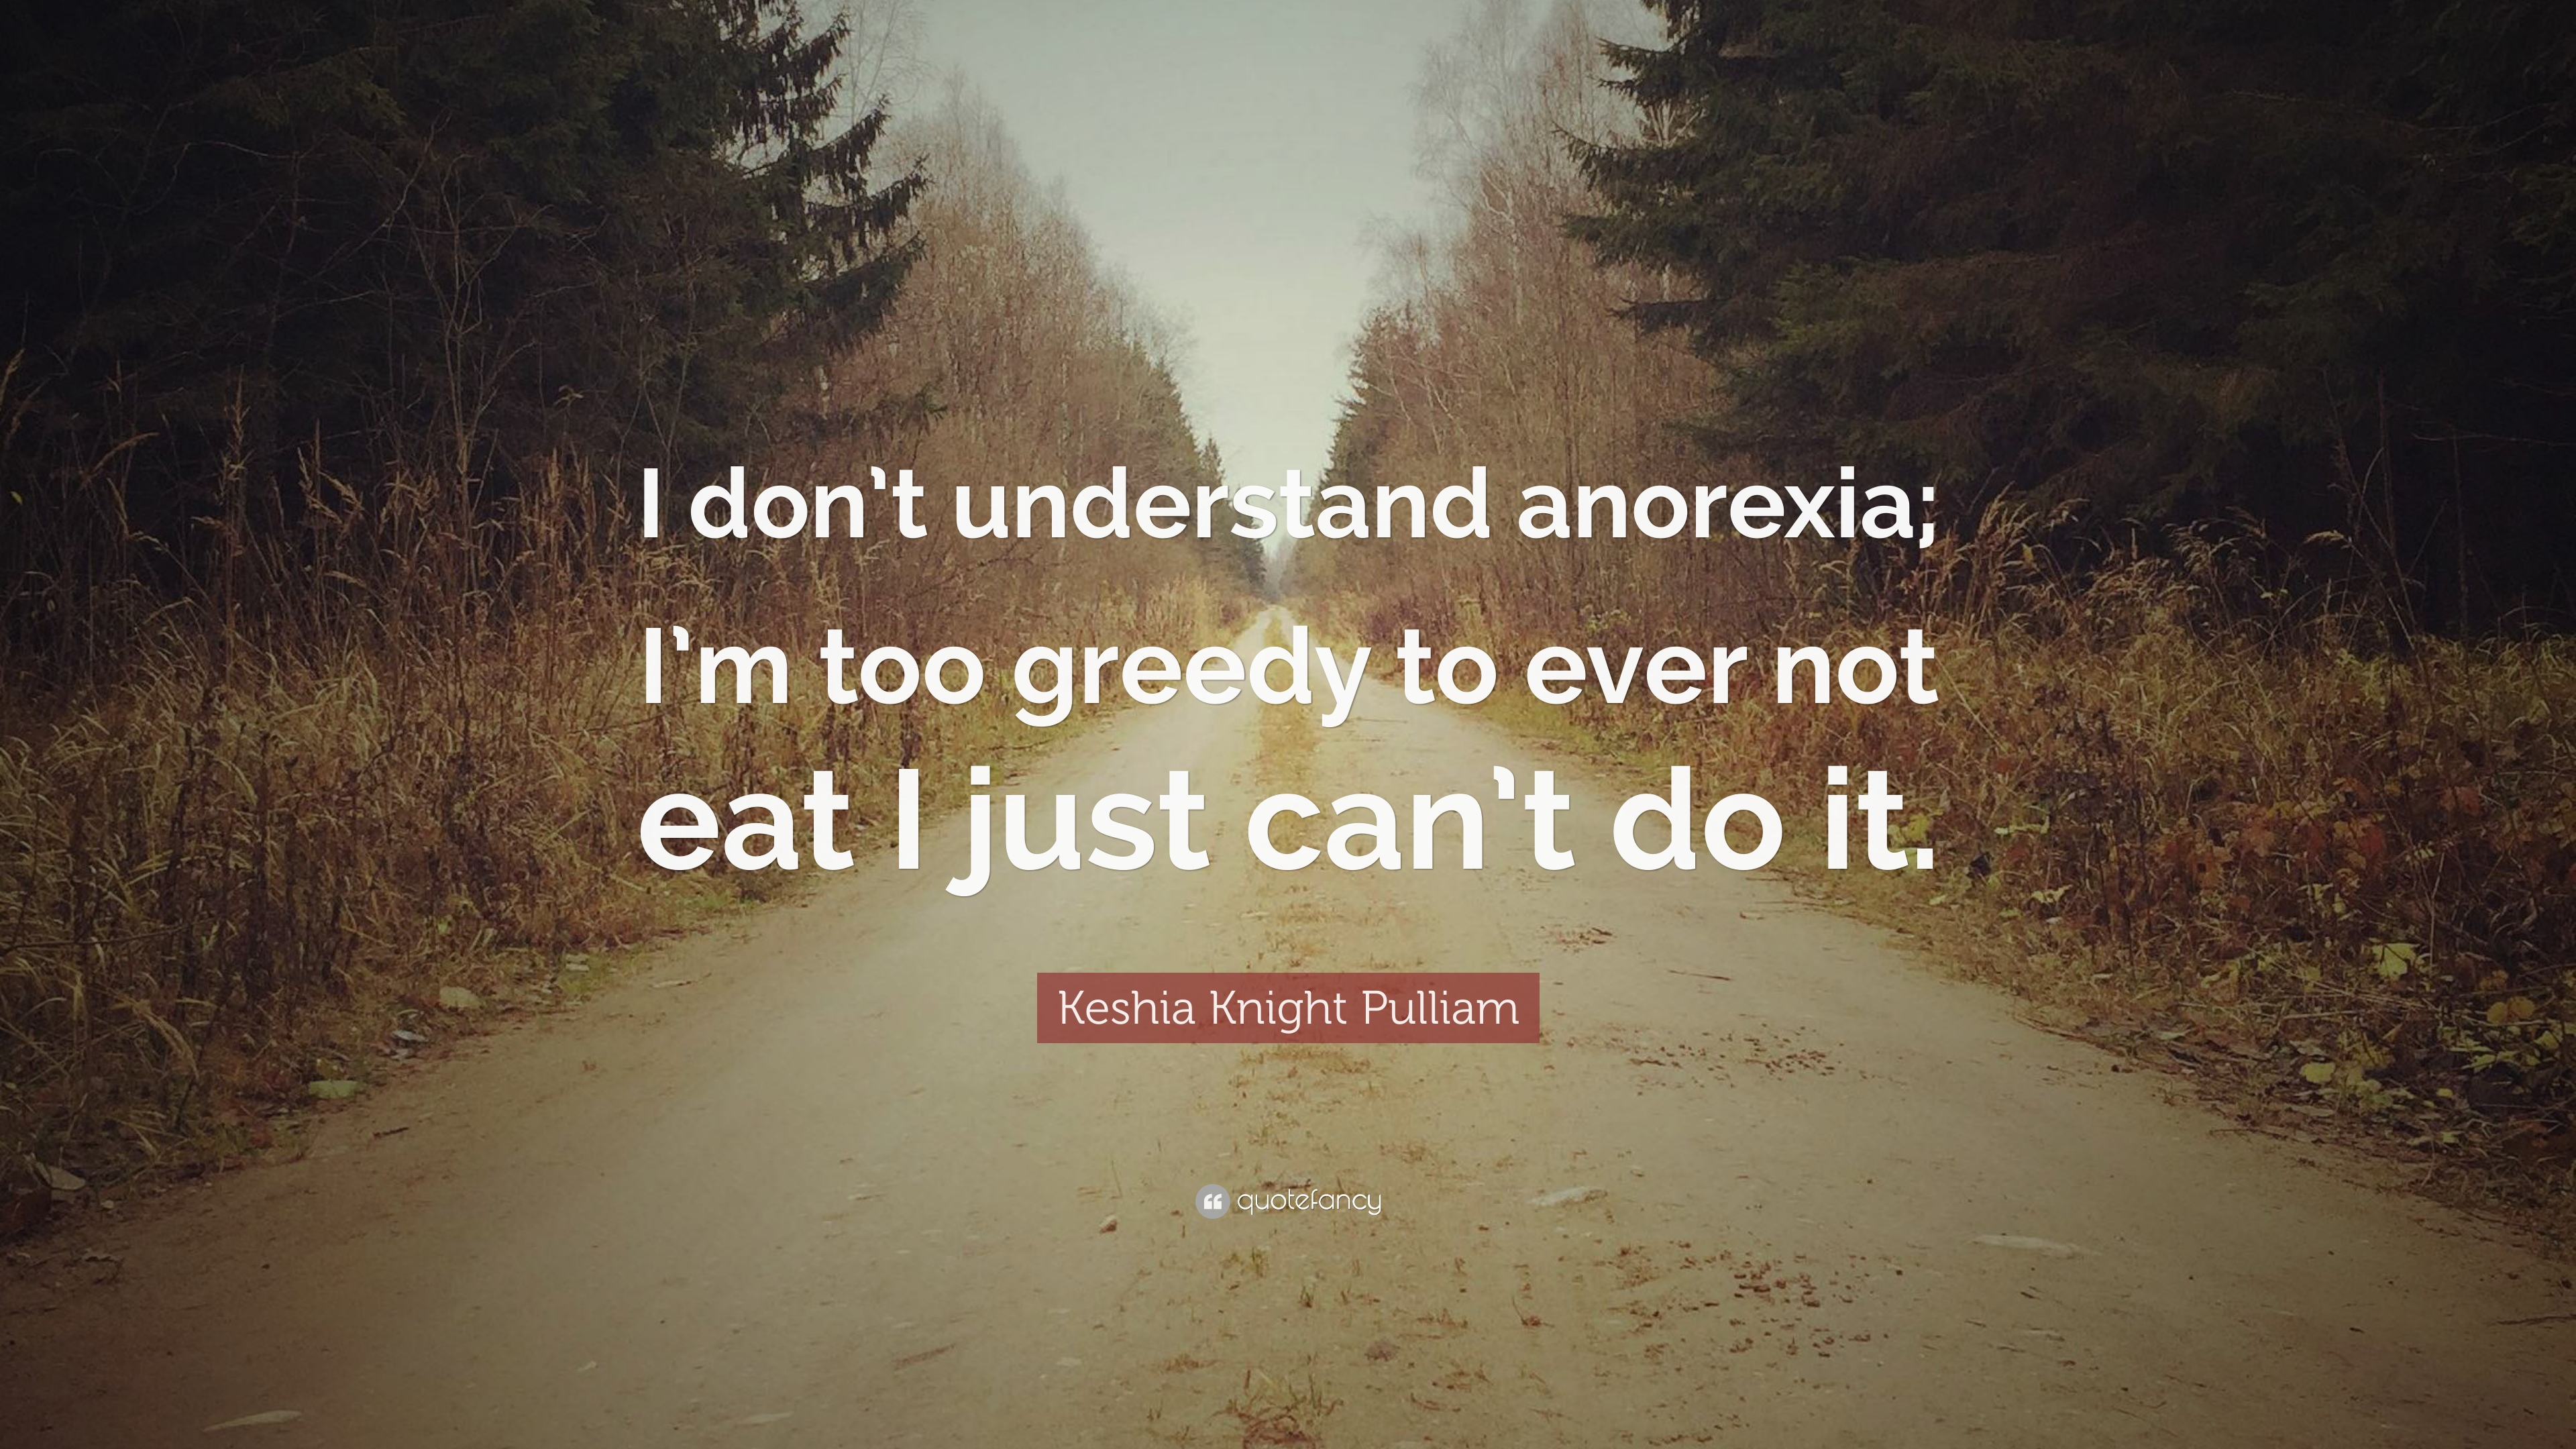 Anorexia Quotes Keshia Knight Pulliam Quotes 3 Wallpapers  Quotefancy